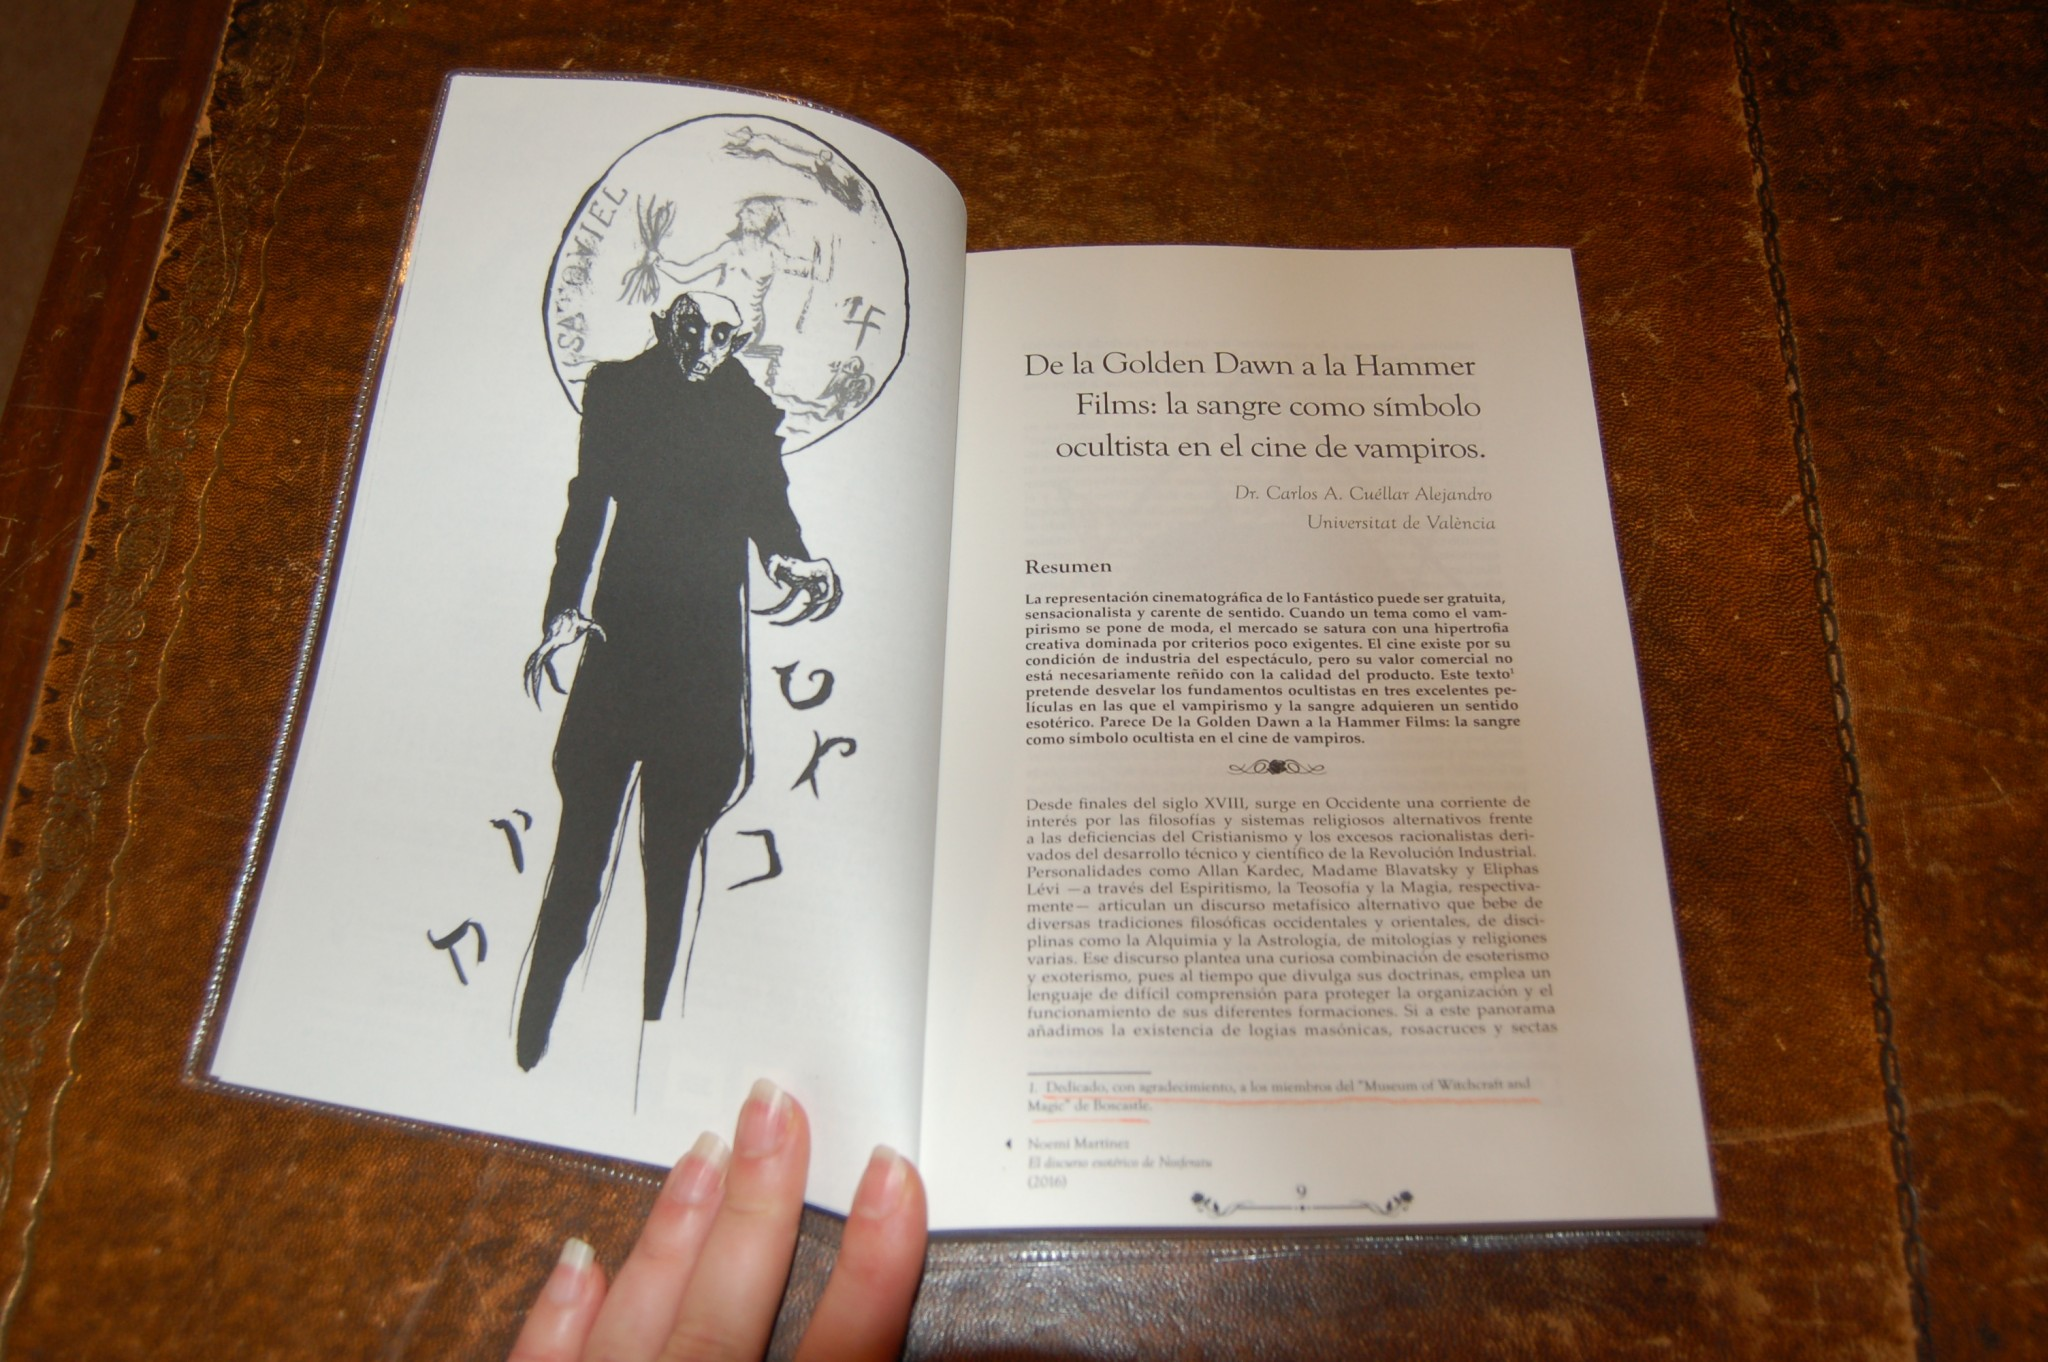 Article researched in the Museum library